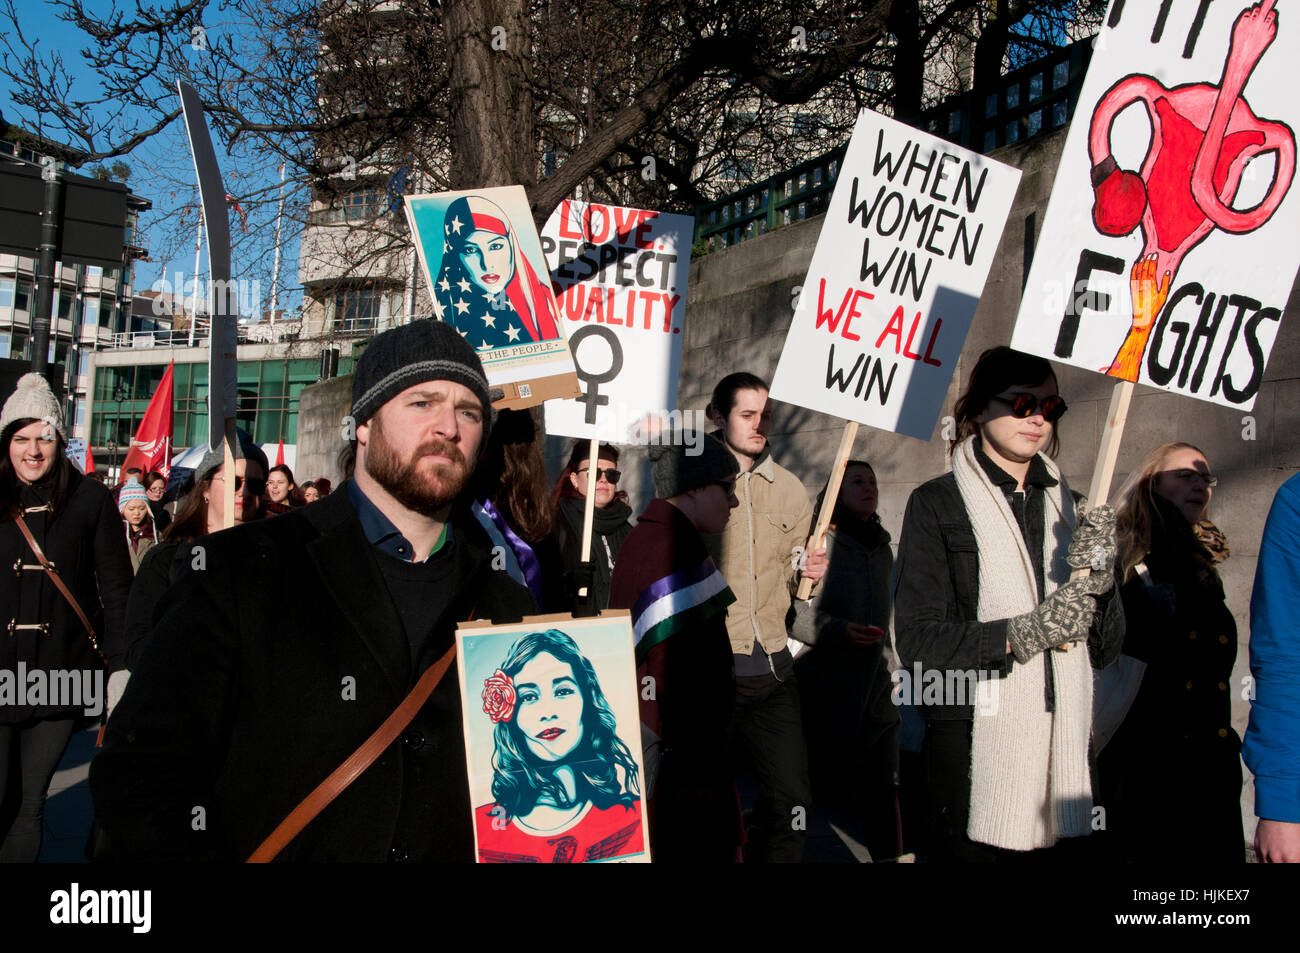 Anti-Trump Women's march. protesters carry posters by Shephard Fairey and placards supporting women - Stock Image